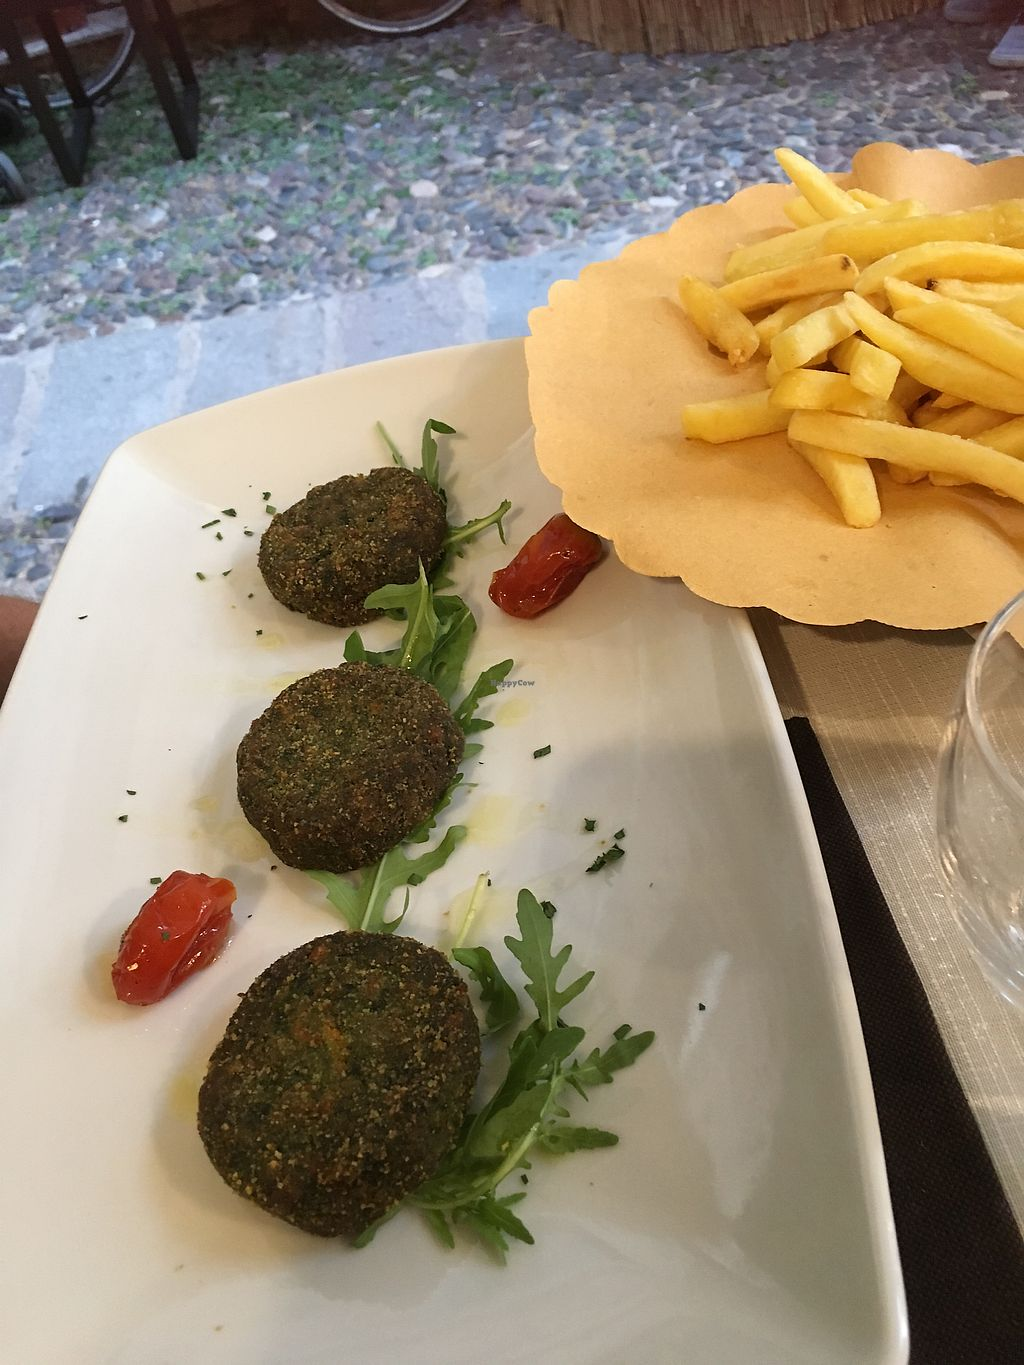 """Photo of Trattoria Di Mirko  by <a href=""""/members/profile/Linda%C3%85hl"""">LindaÅhl</a> <br/>vegan burgers <br/> July 13, 2017  - <a href='/contact/abuse/image/96163/279989'>Report</a>"""